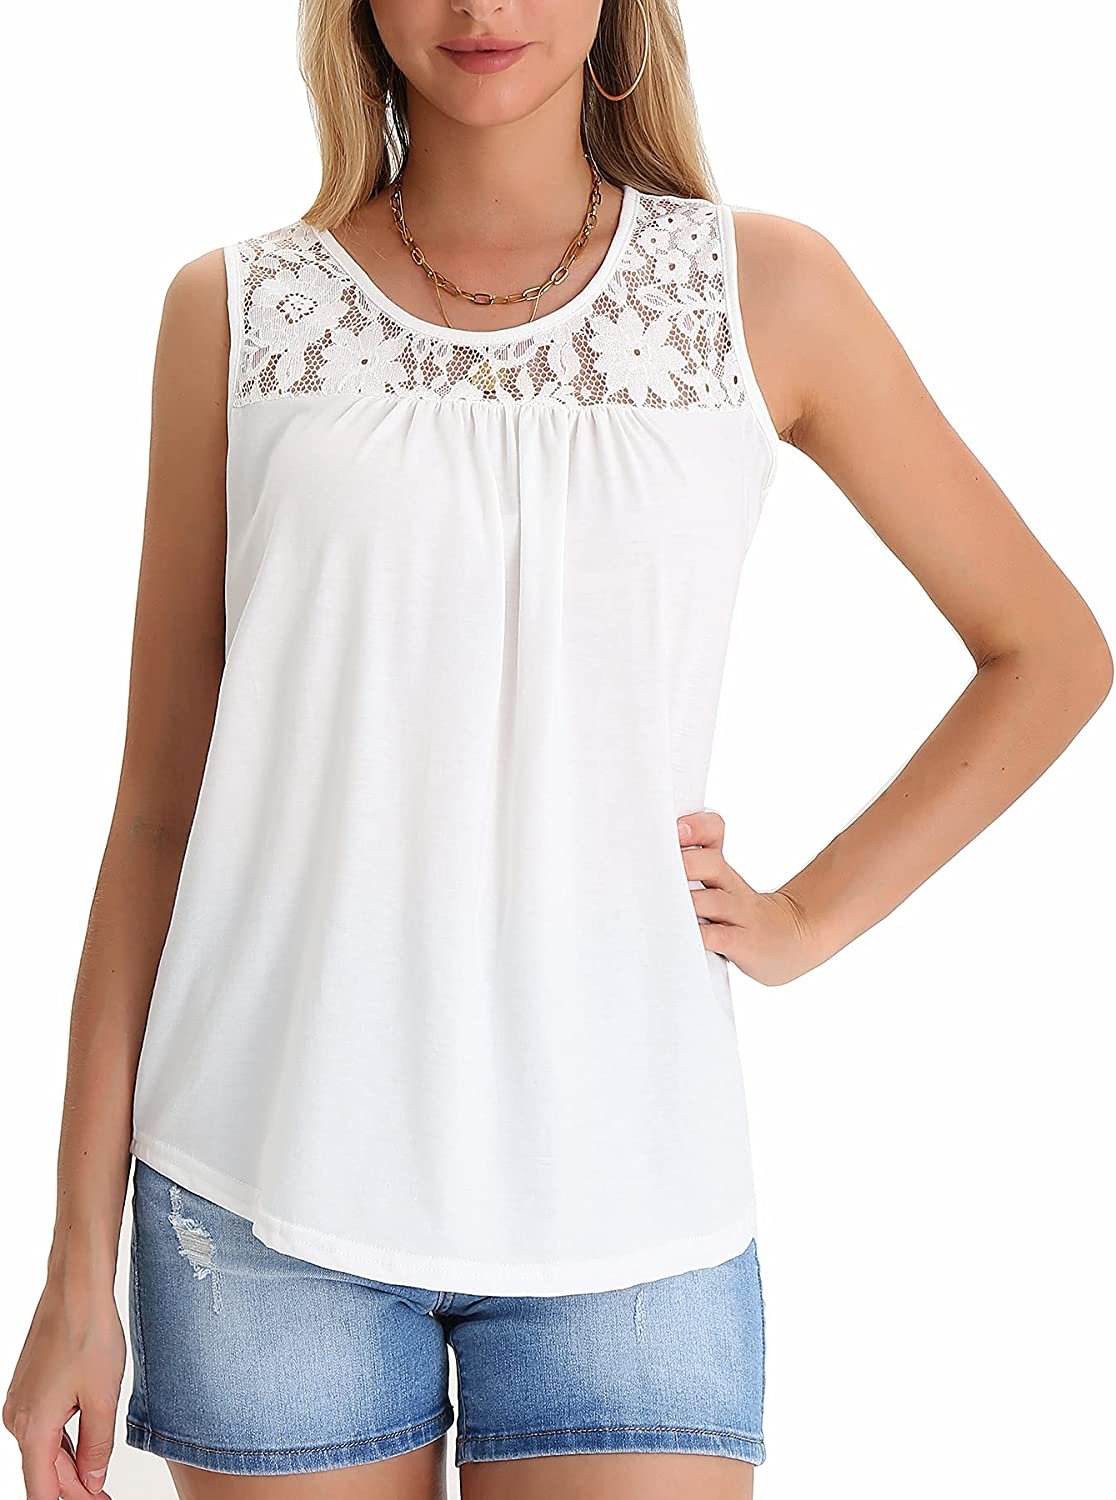 Women's Vest Summer Sleeveless Round Neck Lace Stitching Loose Knit Top